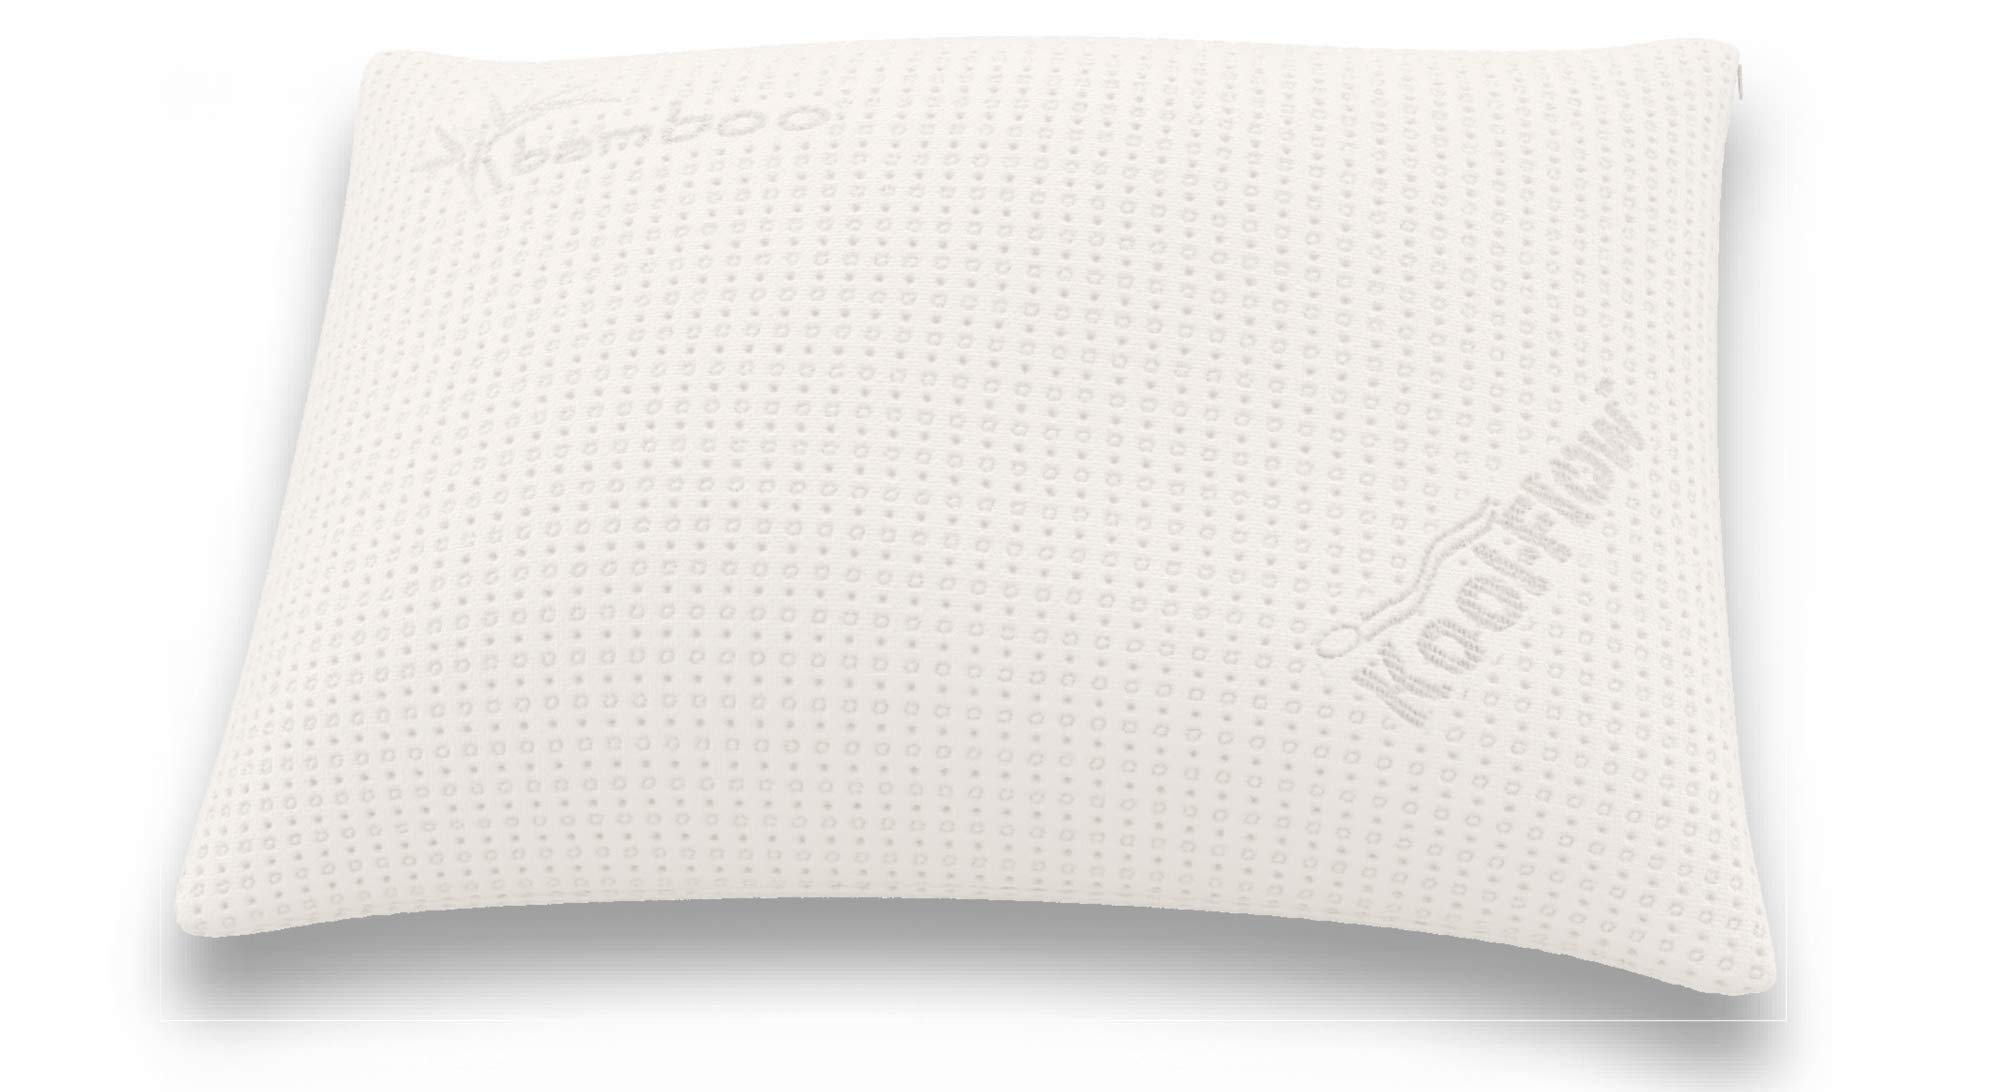 Snuggle-Pedic Supreme Plush Ultra-Luxury Hypoallergenic Bamboo Shredded Gel-Infused Memory Foam Pillow Combination with Adjustable Fit & Zipper Removable Kool-Flow Cooling Pillow Cover (Queen)